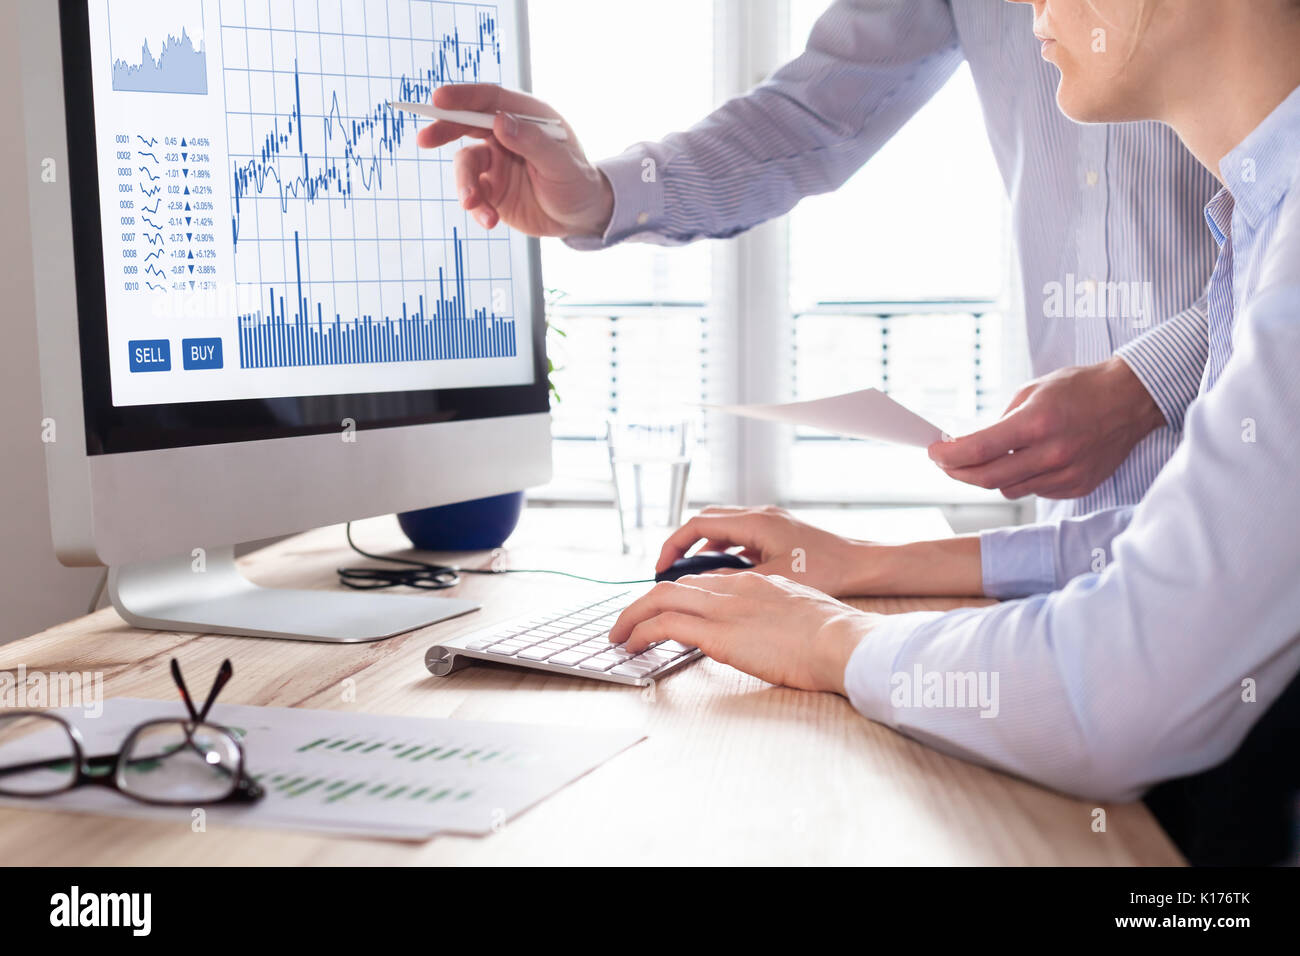 Team of traders working with forex (foreign exchange) trading charts and graphs on computer screen, concept about stock market investment, finance, se - Stock Image